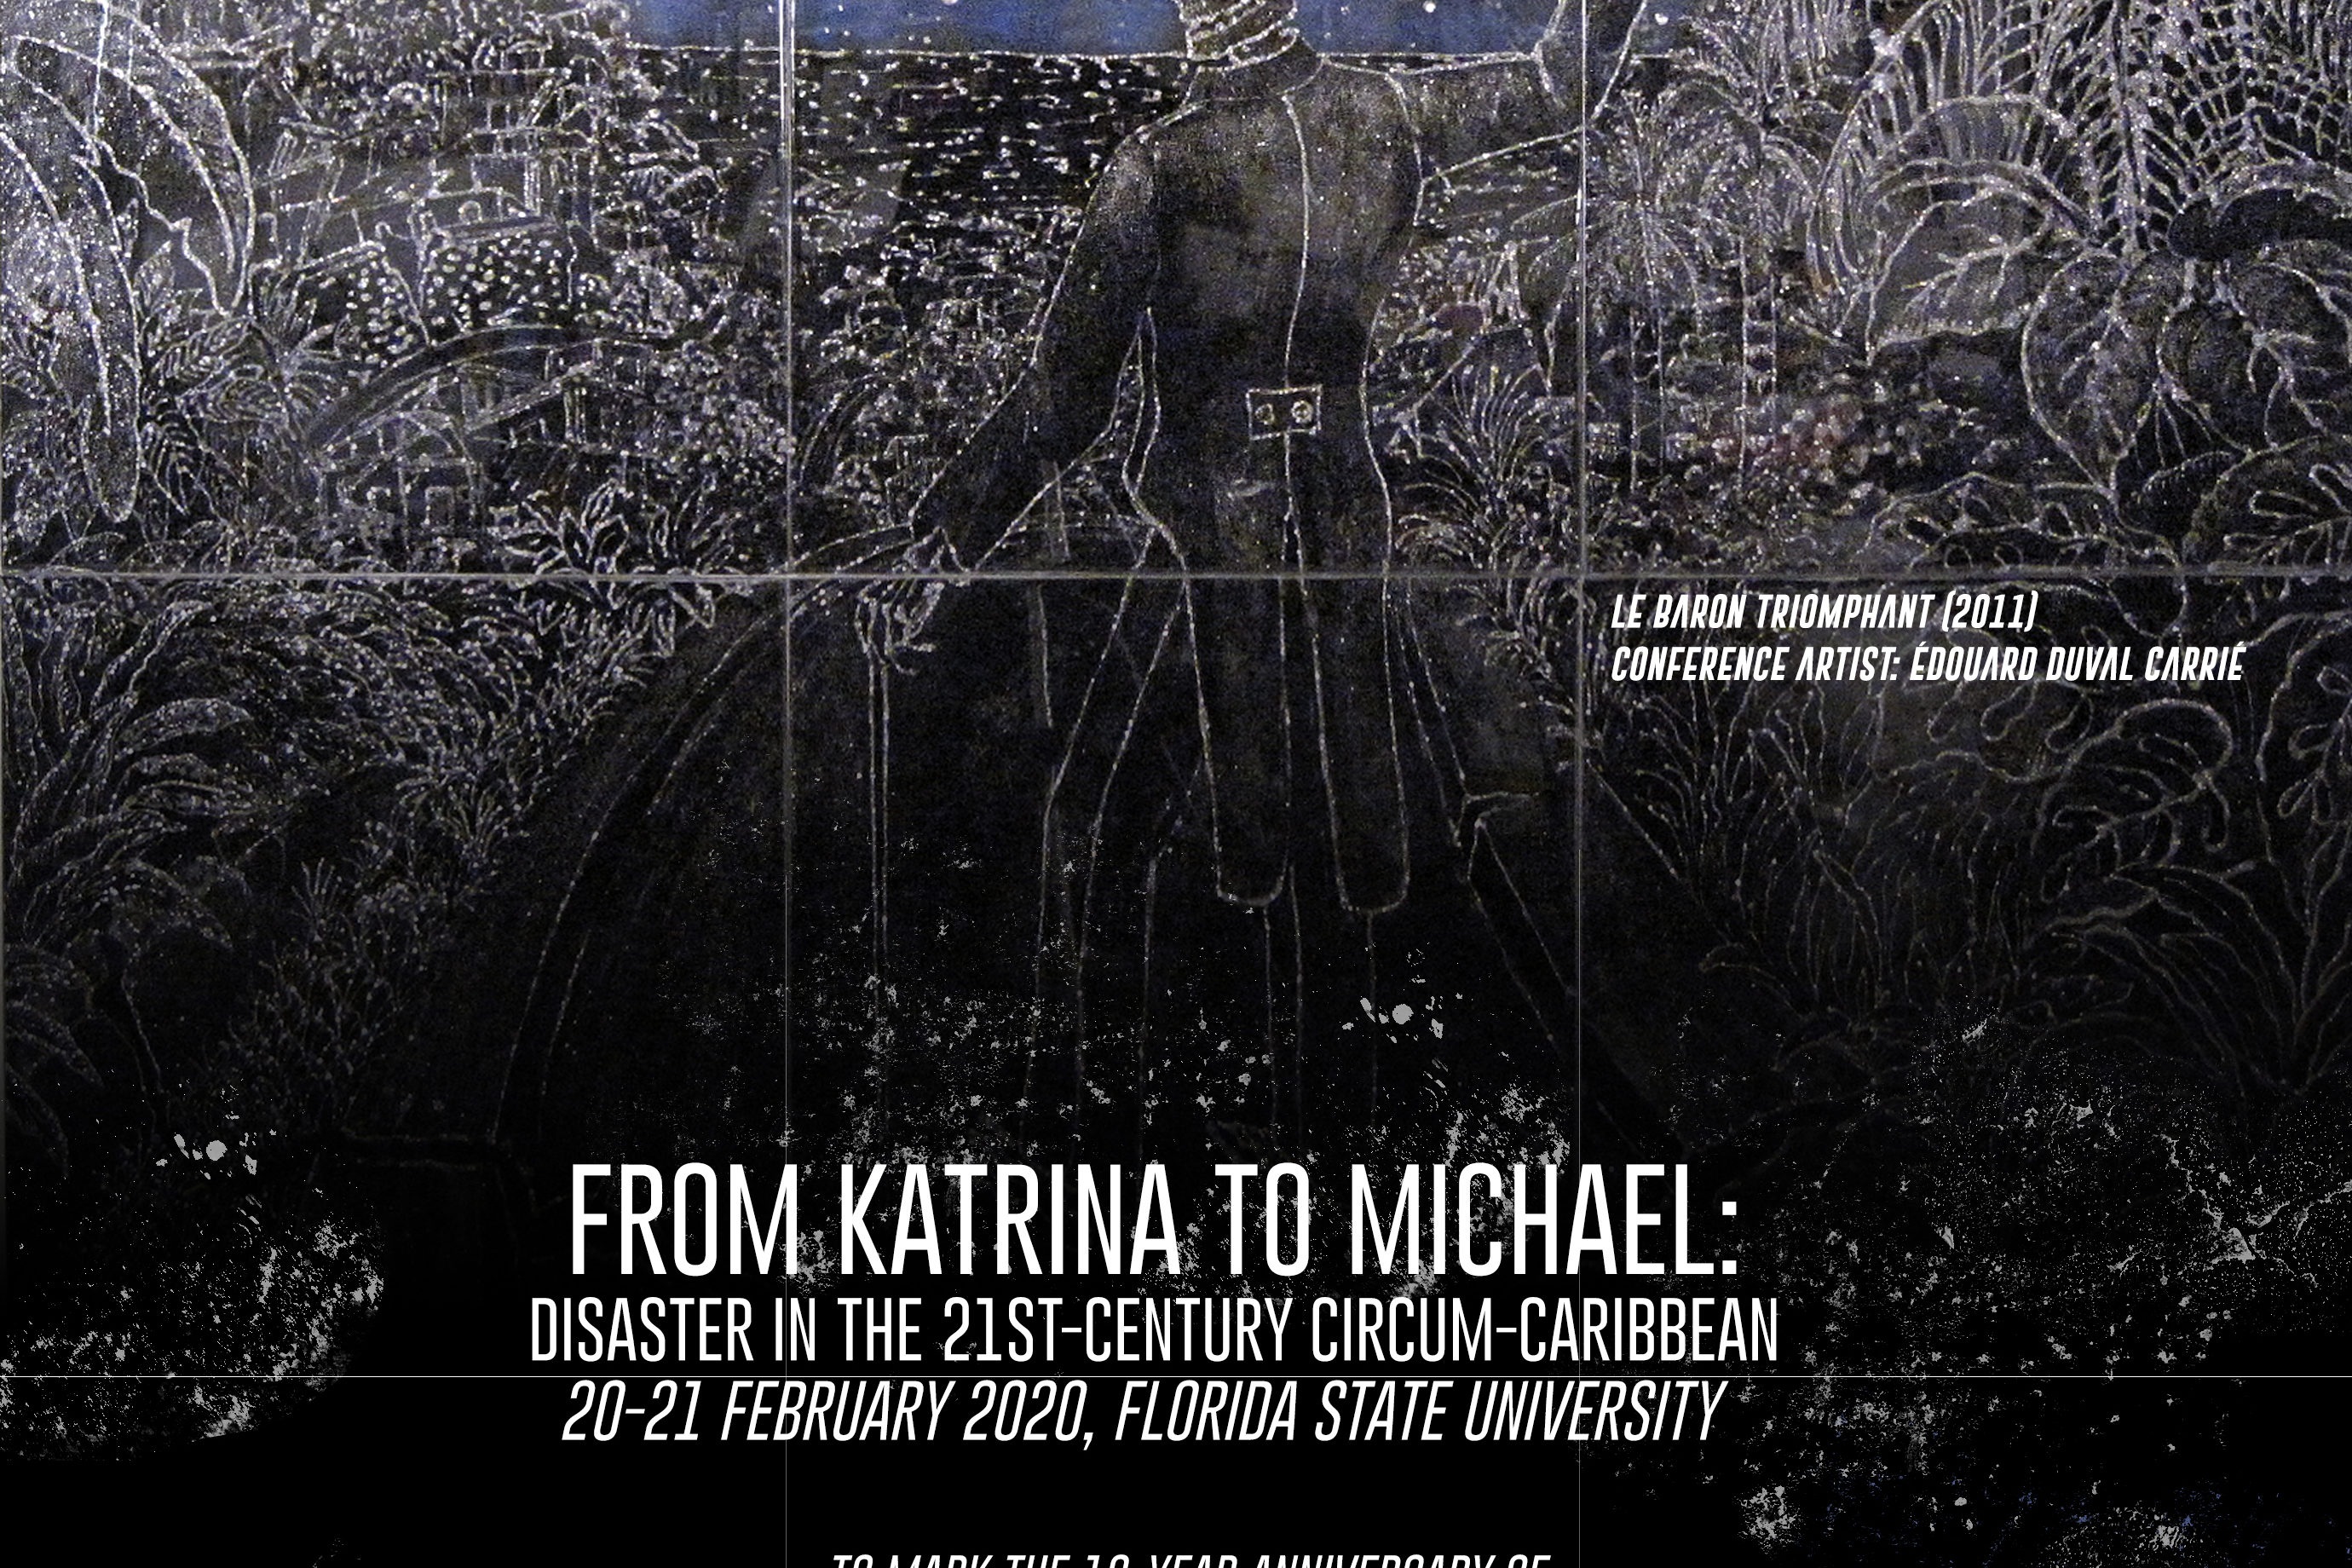 Conference Artist at Florida State University's Winthrop-King Institute